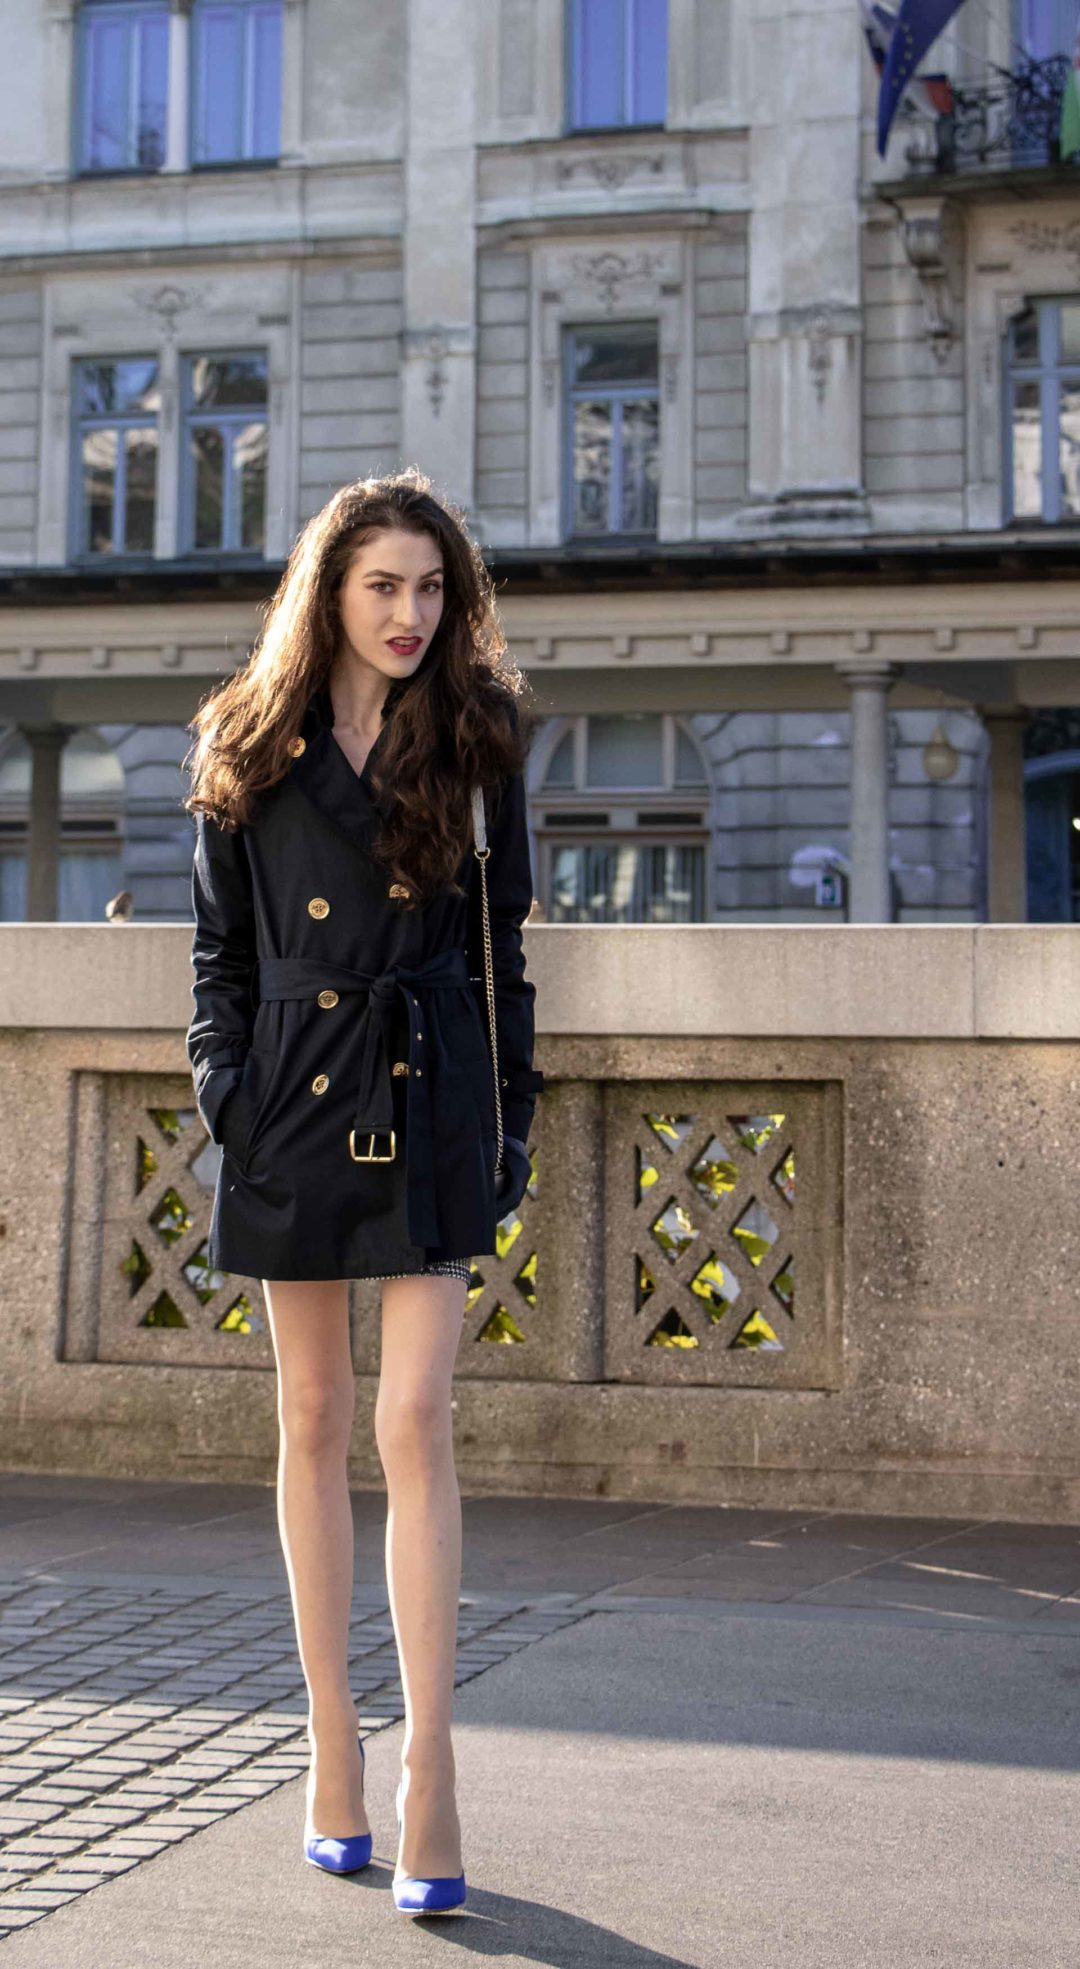 Beautiful Slovenian Fashion Blogger Veronika Lipar of Brunette from Wall wearing dark navy Michael Kors short trench coat, Gianvito Rossi blue satin court shoes, white chain shoulder bag for a night out with friends